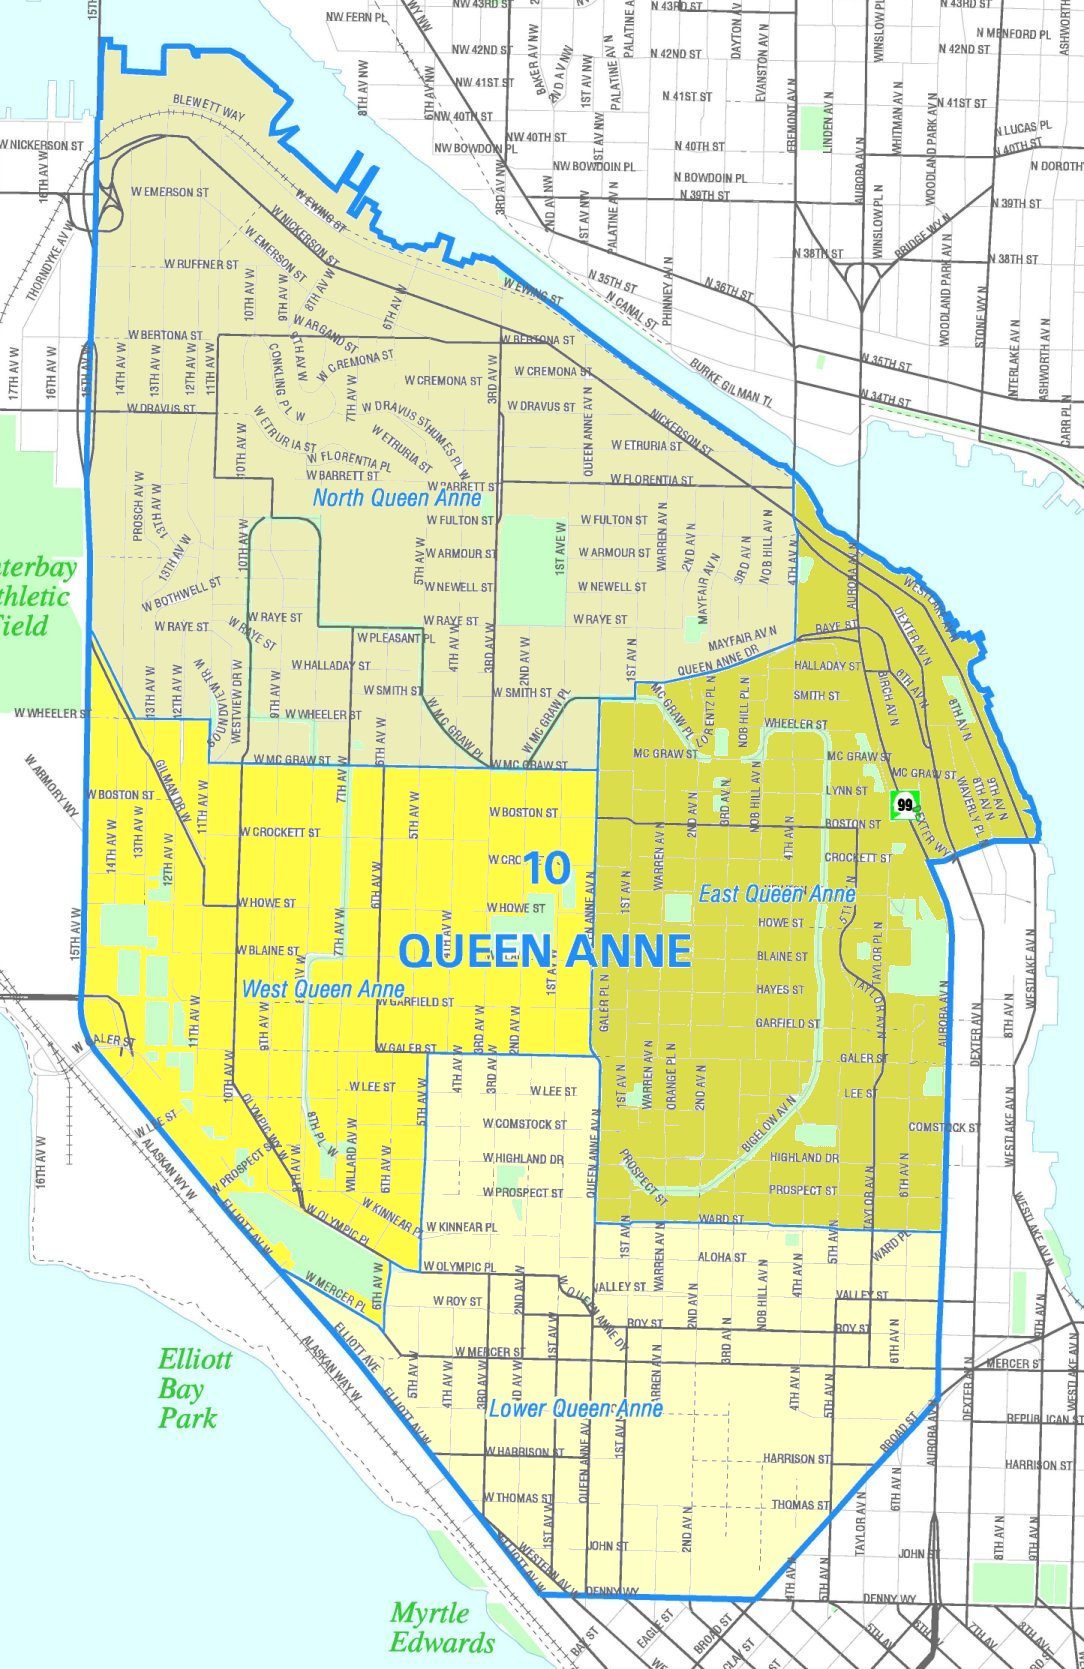 Map of Queen Anne